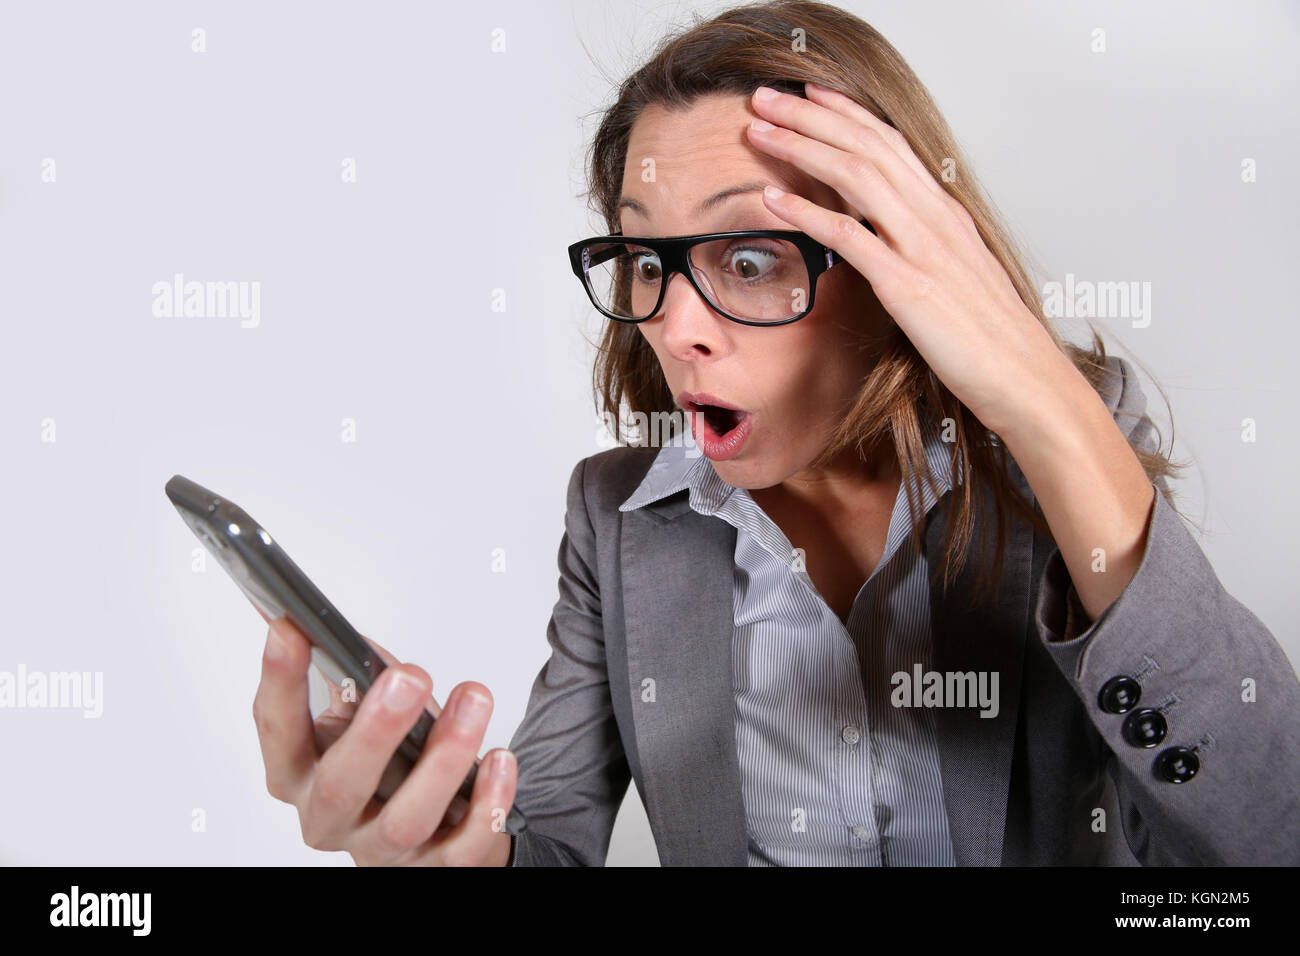 Businesswoman reading message on smartphone - Stock Image